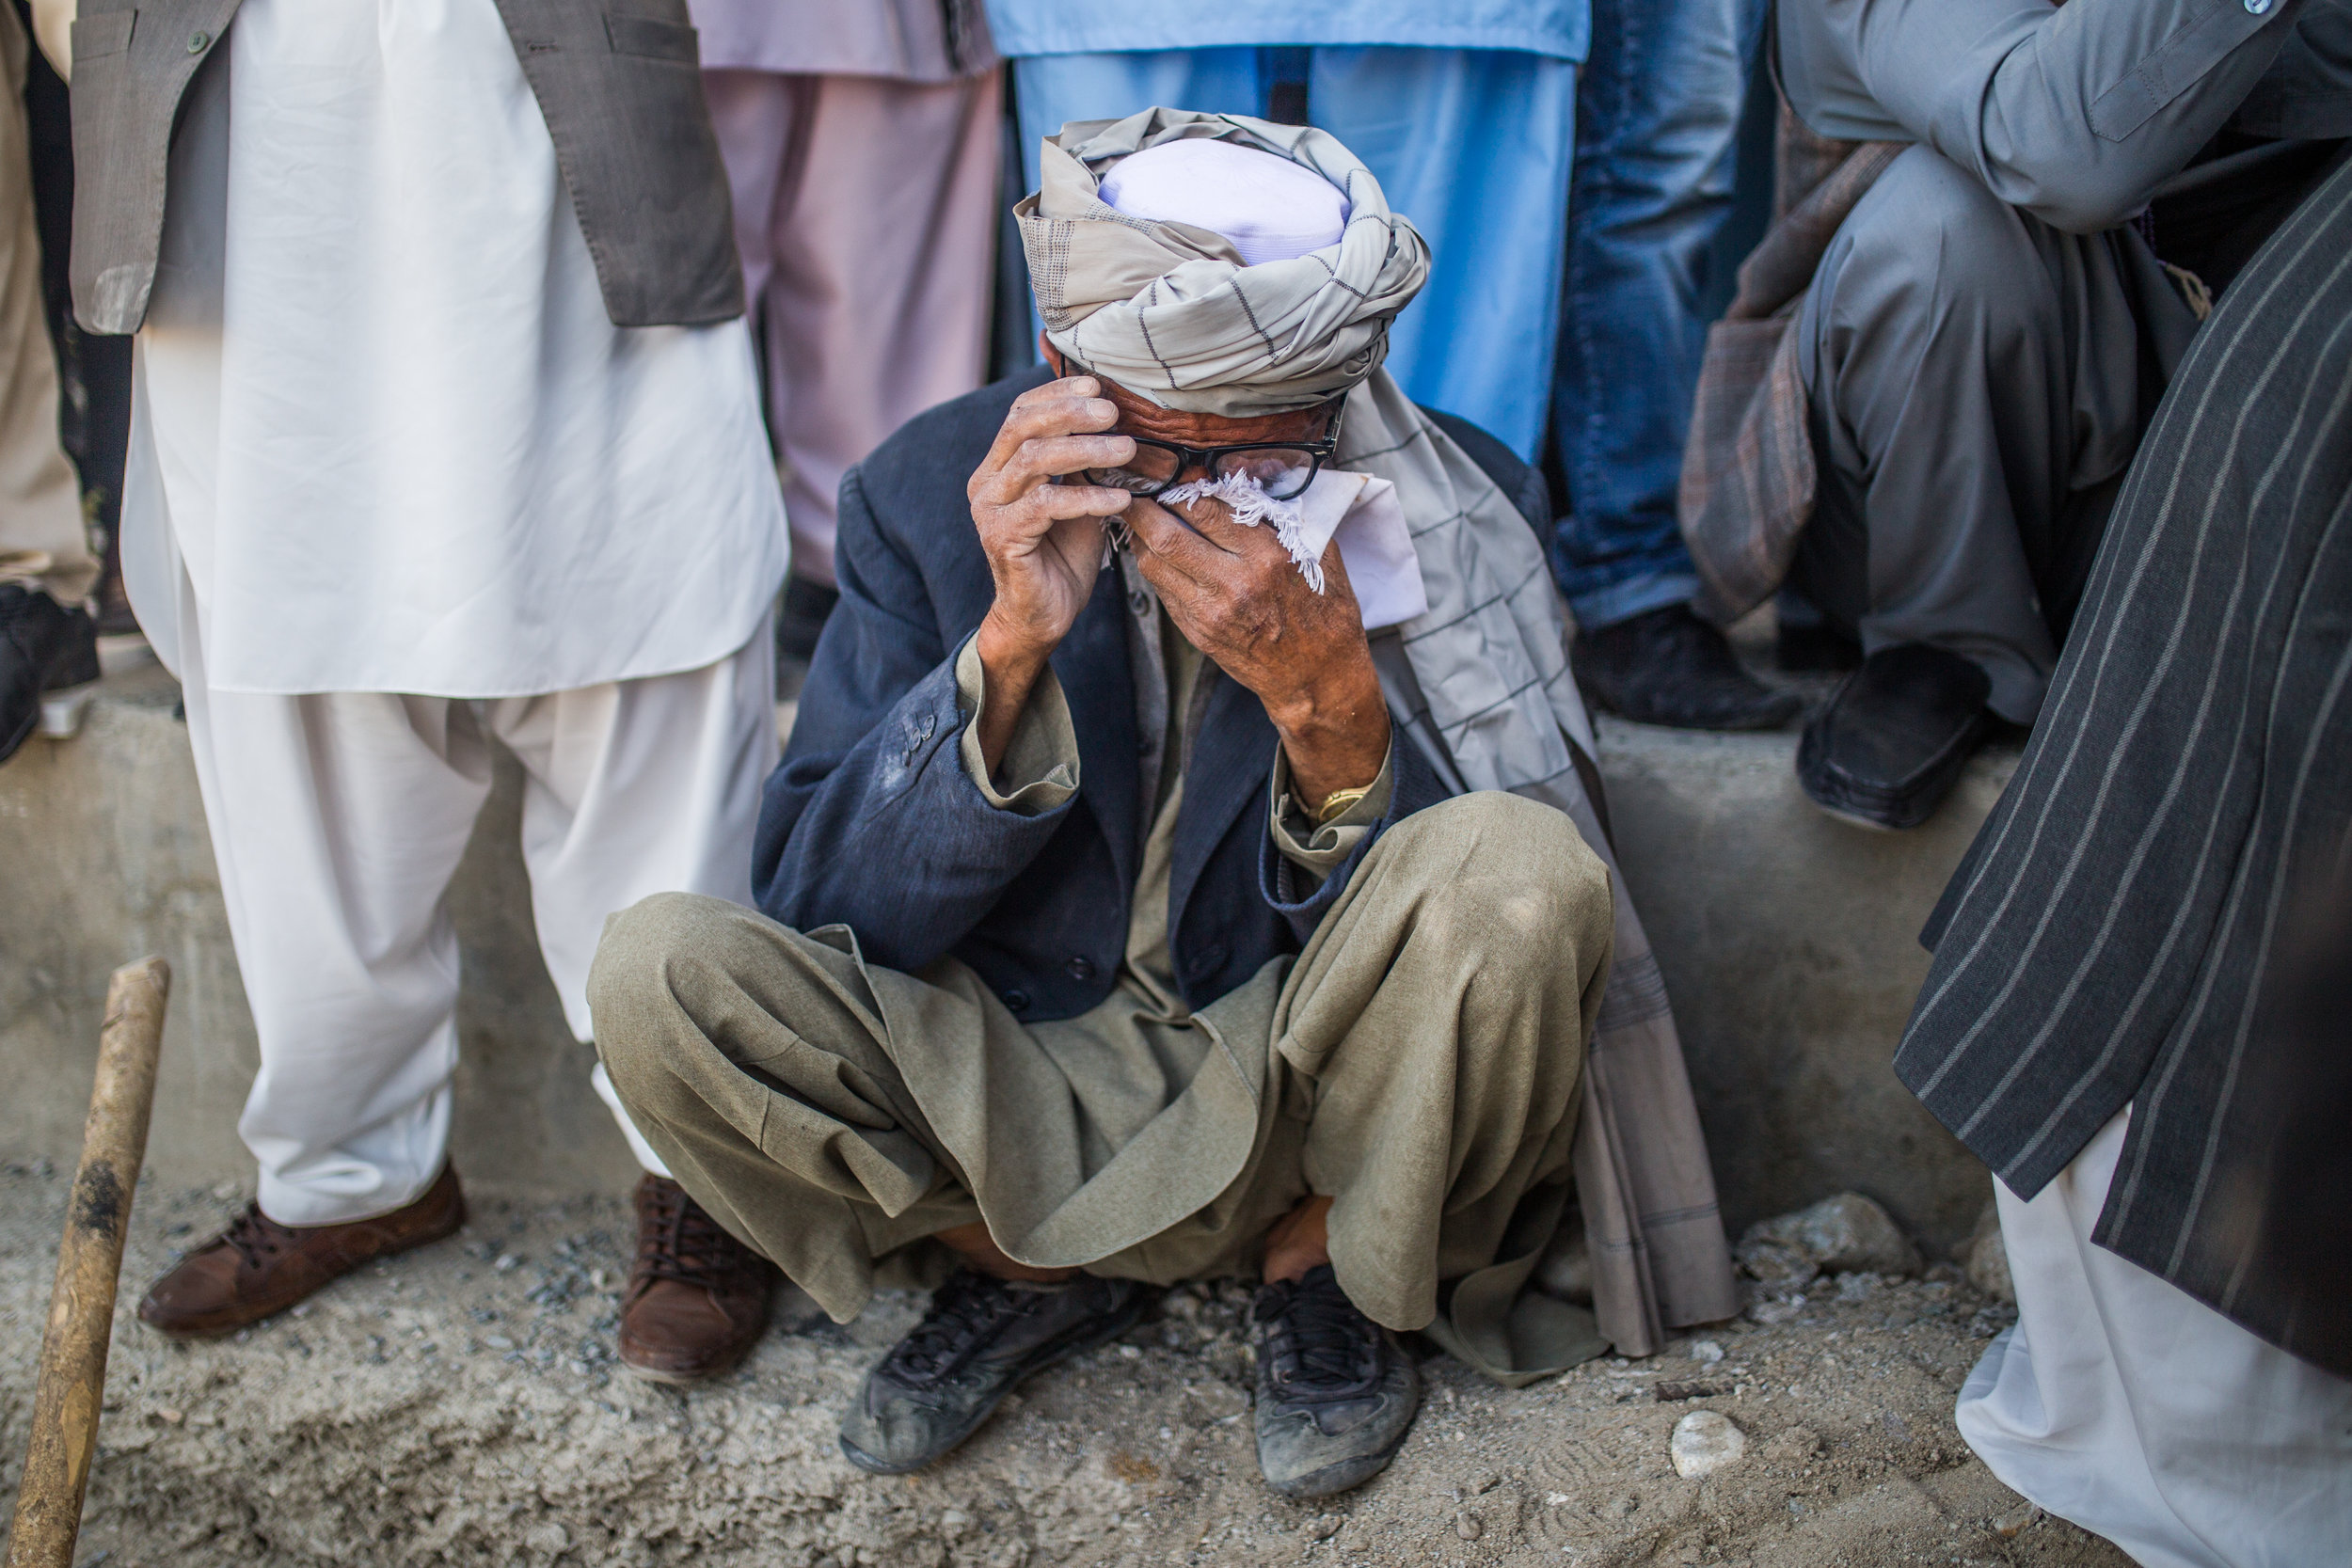 A relative grieves at the funeral of Rahmatullah Nasiry, a young teacher and journalist killed in the massive May 31st truck bombing in Kabul's green zone. Kabul, 2017.